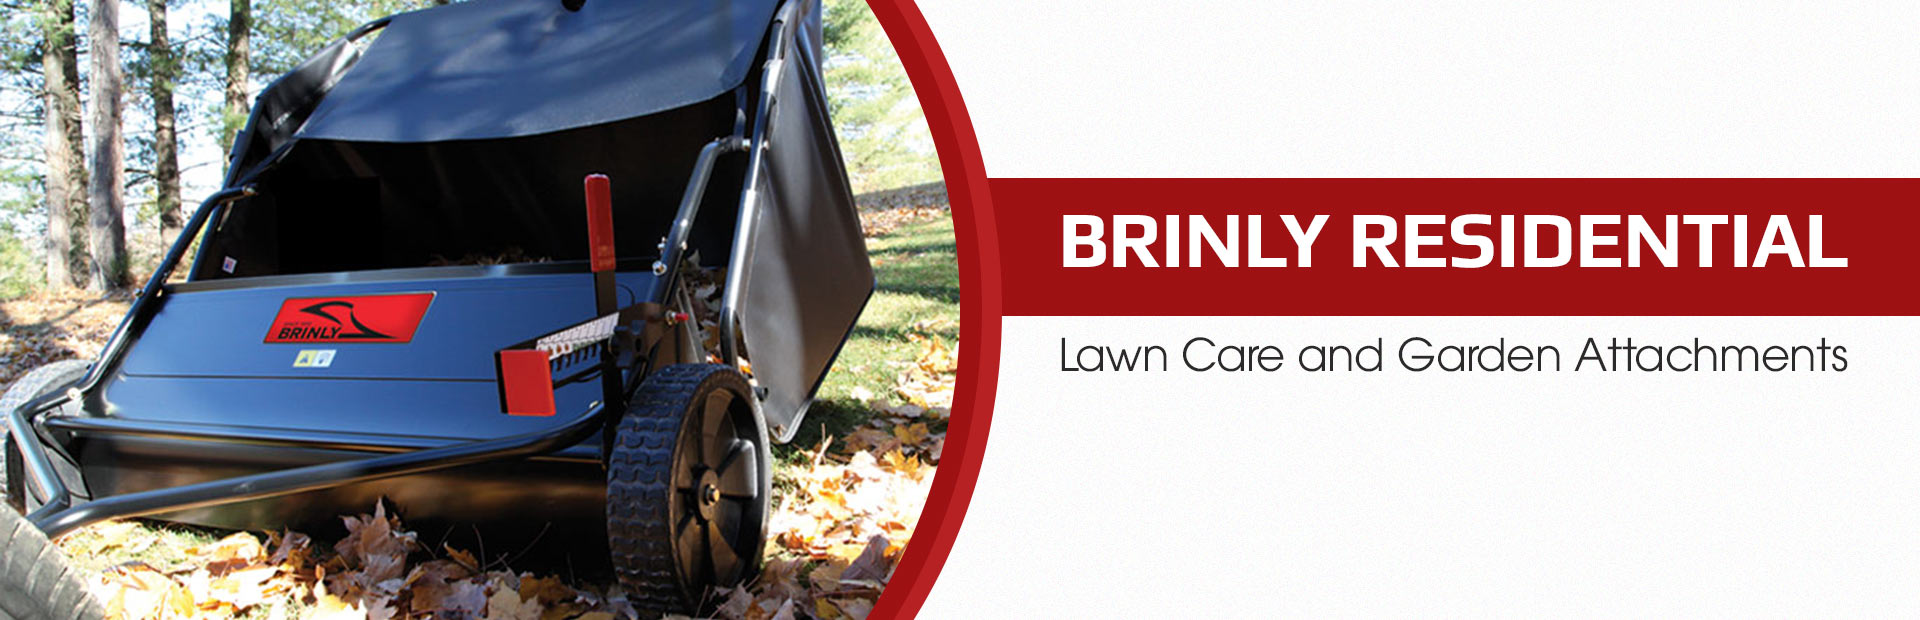 Brinly Residential Lawn Care and Garden Attachments: Click here to view the models.